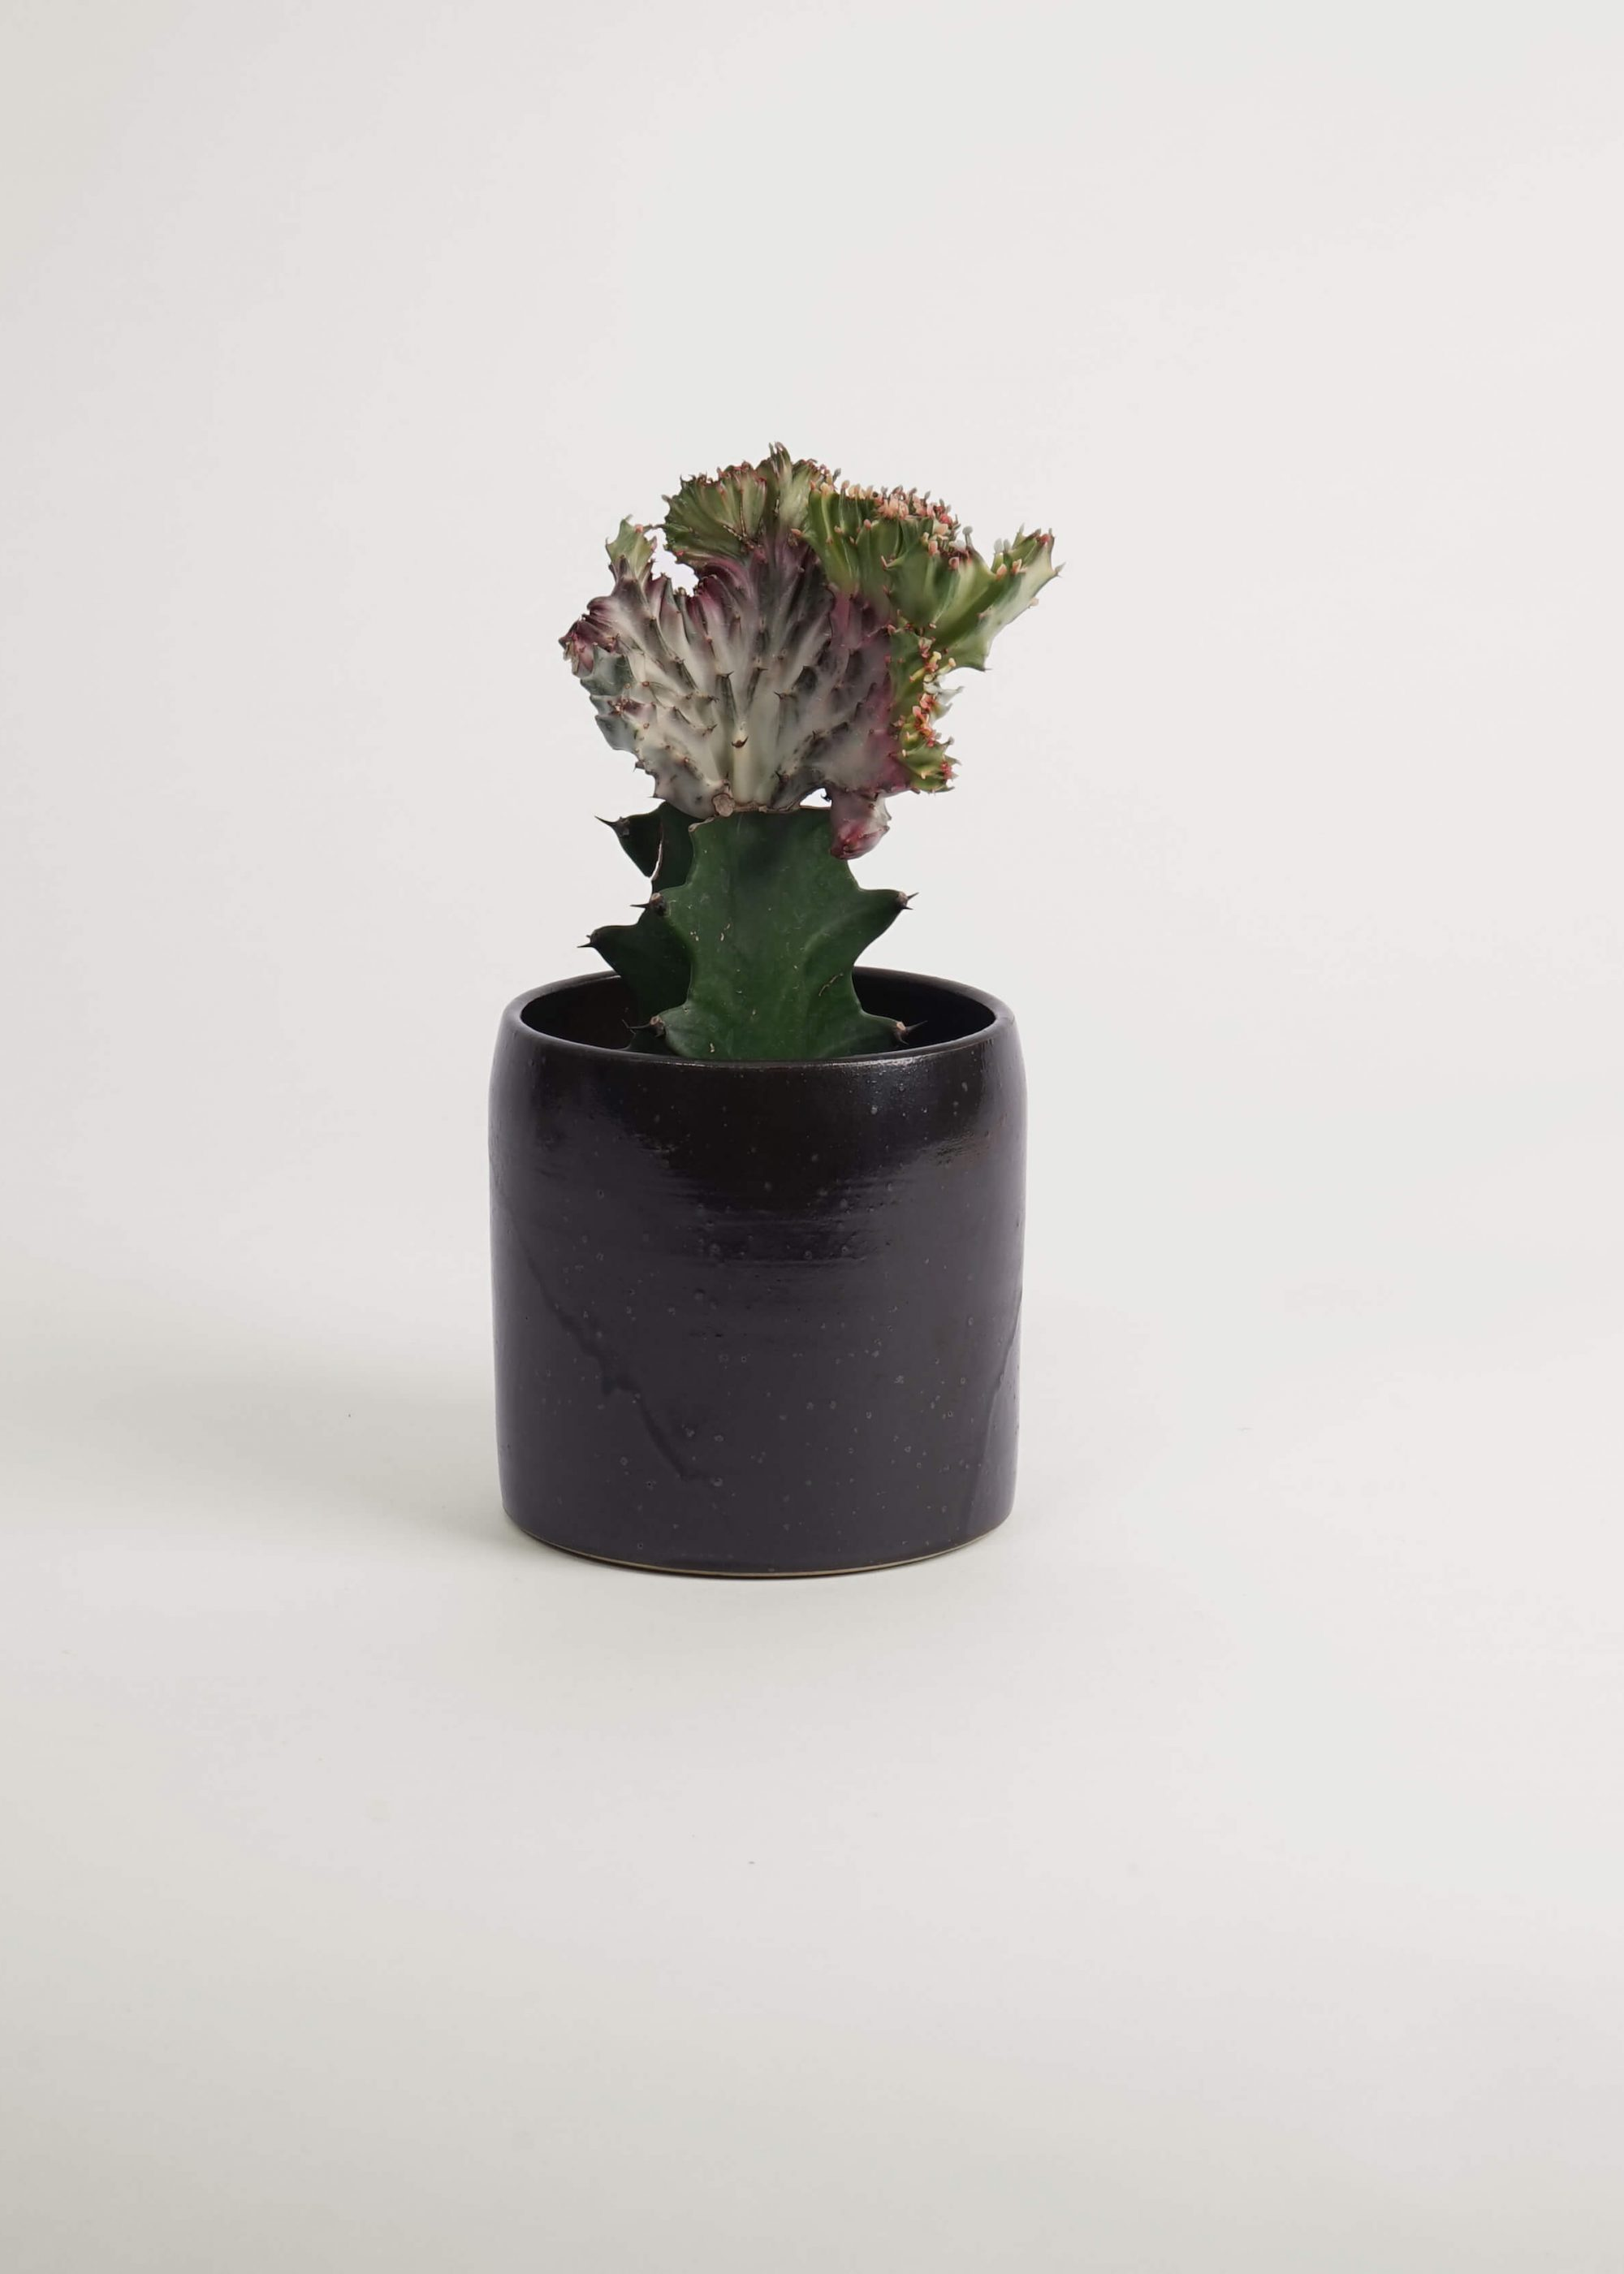 Product image for N° ICD8 Burri Planter S